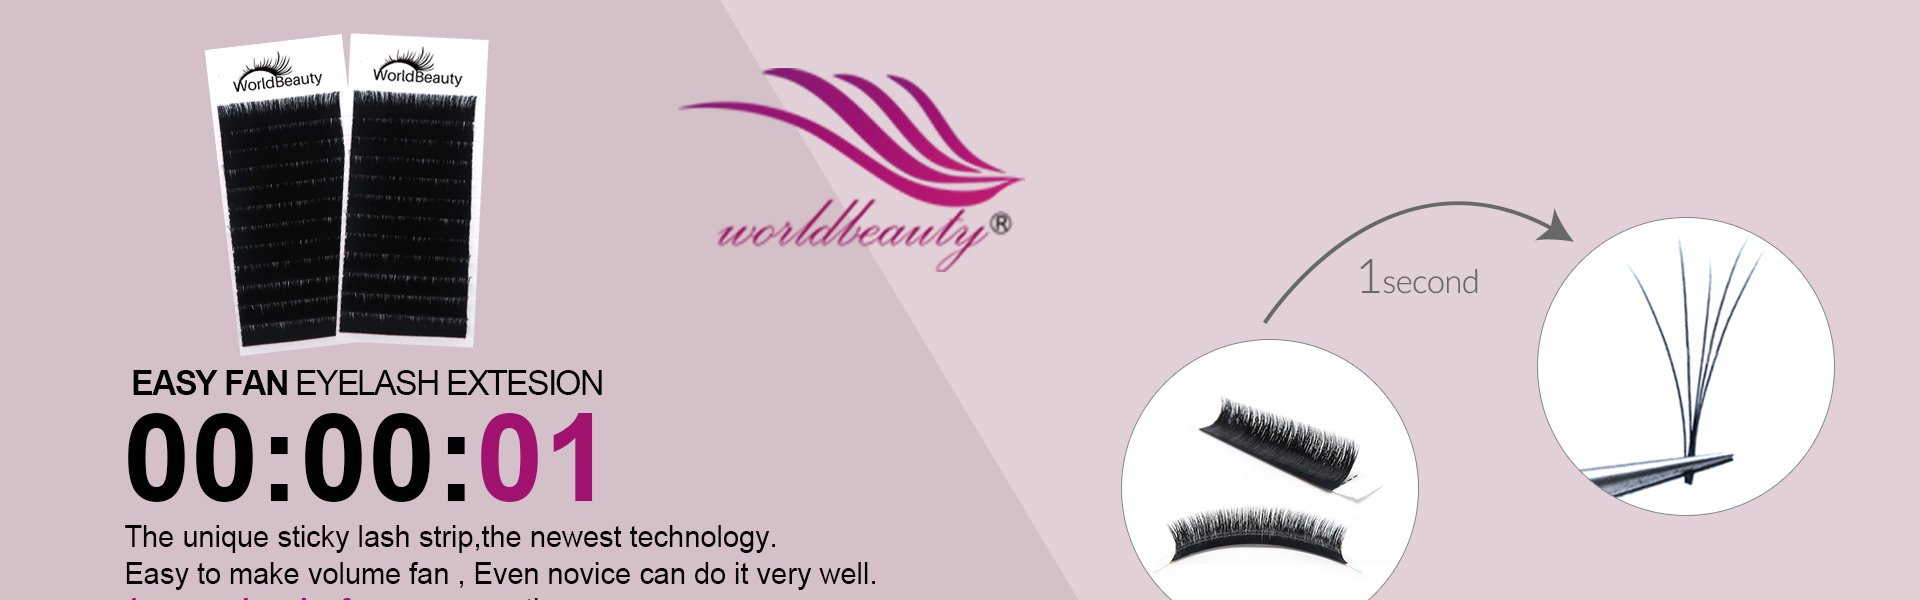 World beauty lashes-Biggest eyelash manufacturer in China